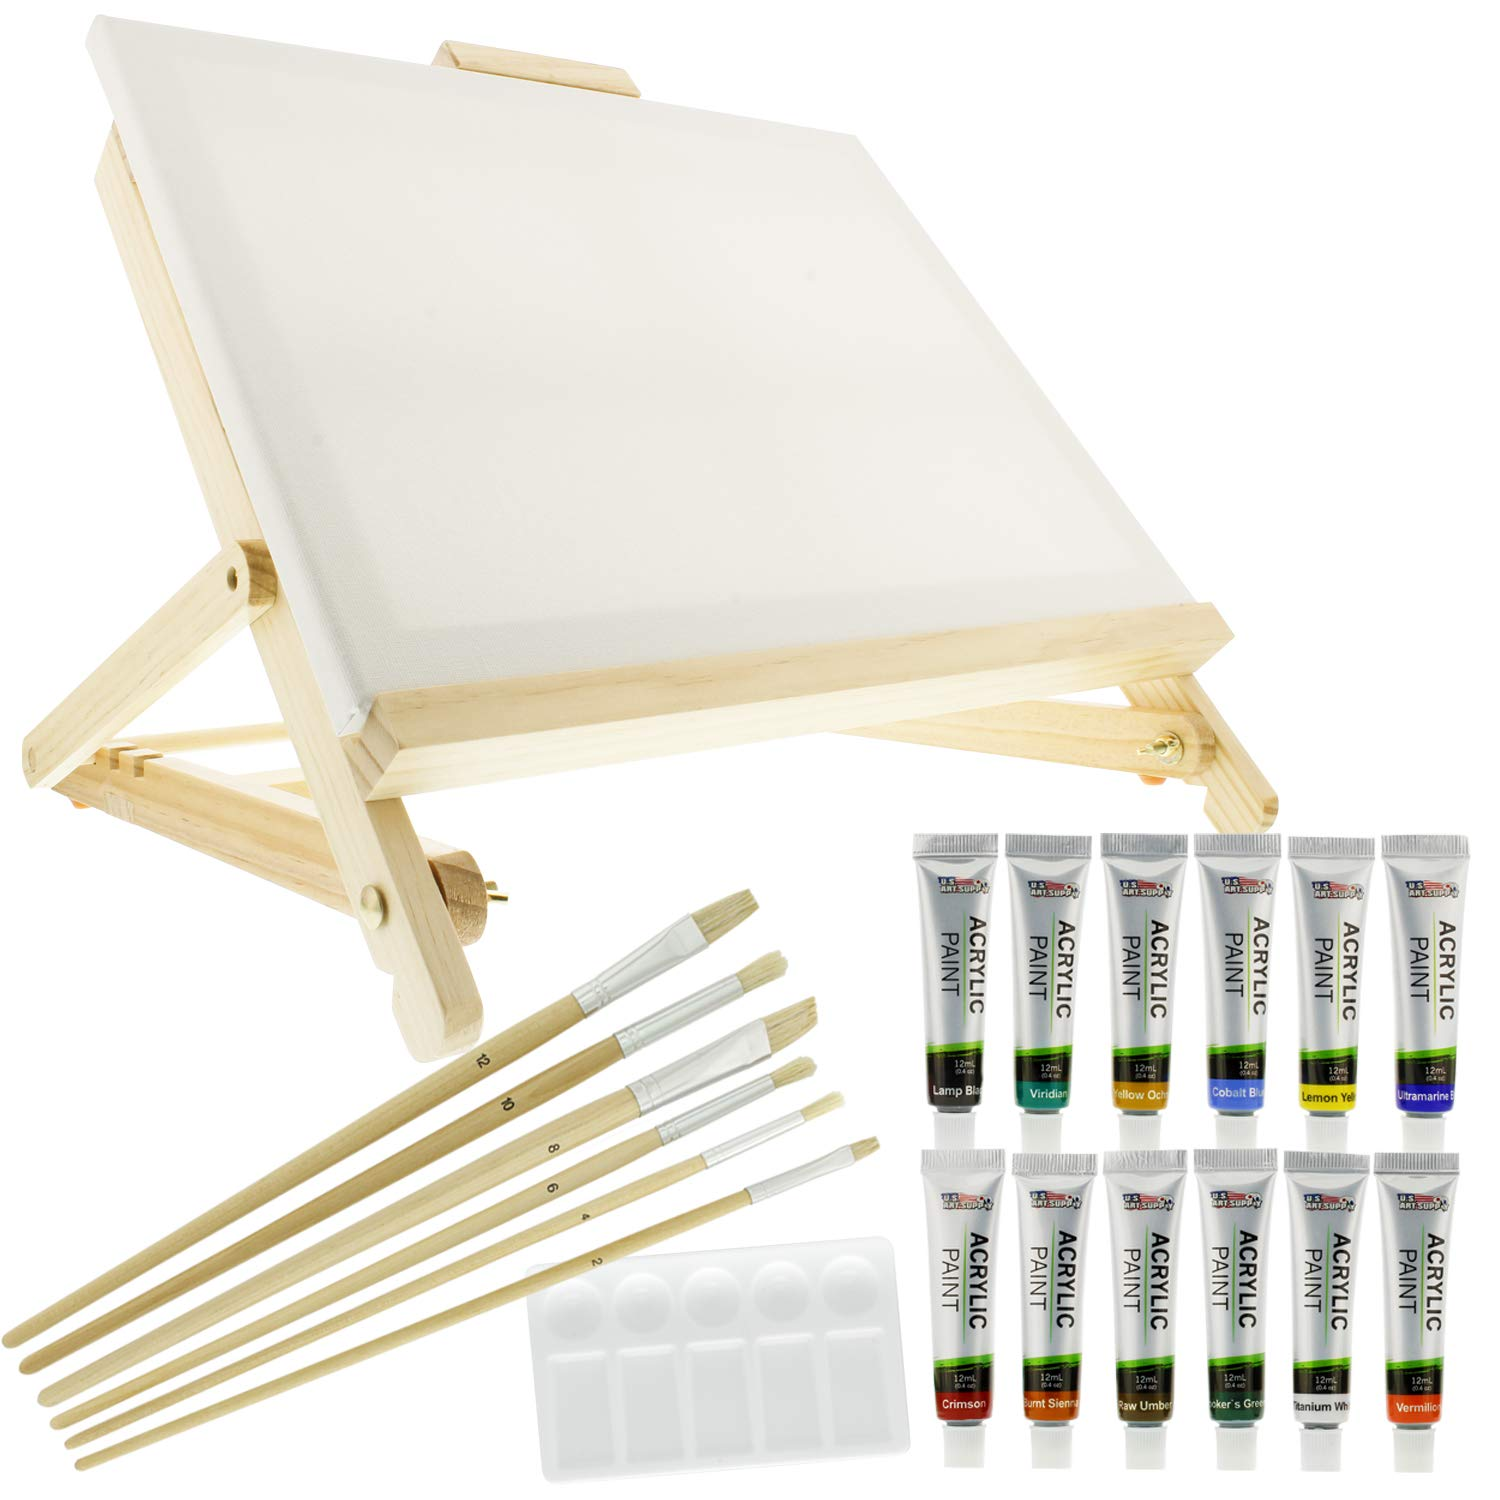 Us Art Supply 21 Piece Acrylic Painting Table Easel Set With 12 Tubes Acrylic Painting Colors 11 X14 Stretched Canvas 6 Artist Brushes Plastic